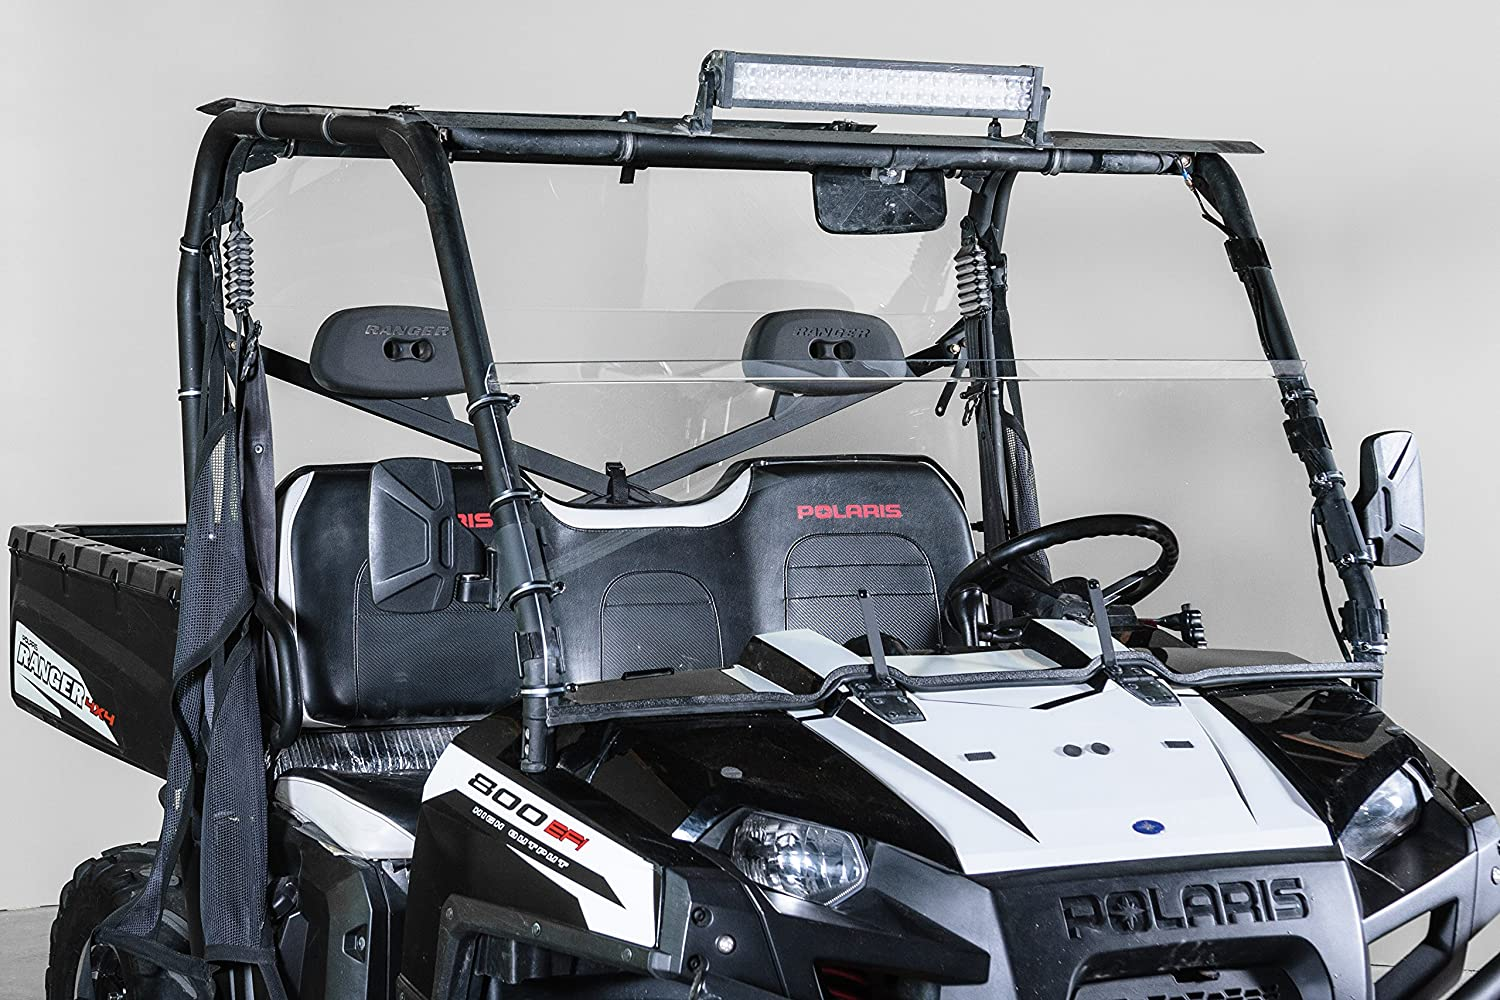 Polaris Ranger XP Half UTV Windshield 3/16' - Models 2009 - Made in the USA!. UTV Windshields and Accessories